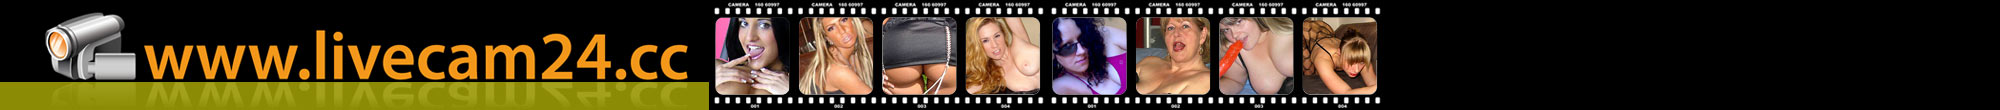 JessySquirt, 24 Jahre, BH: 75 D - brüste 75dd -  - Video Web Cams Live Sex Chat von heissen Girls